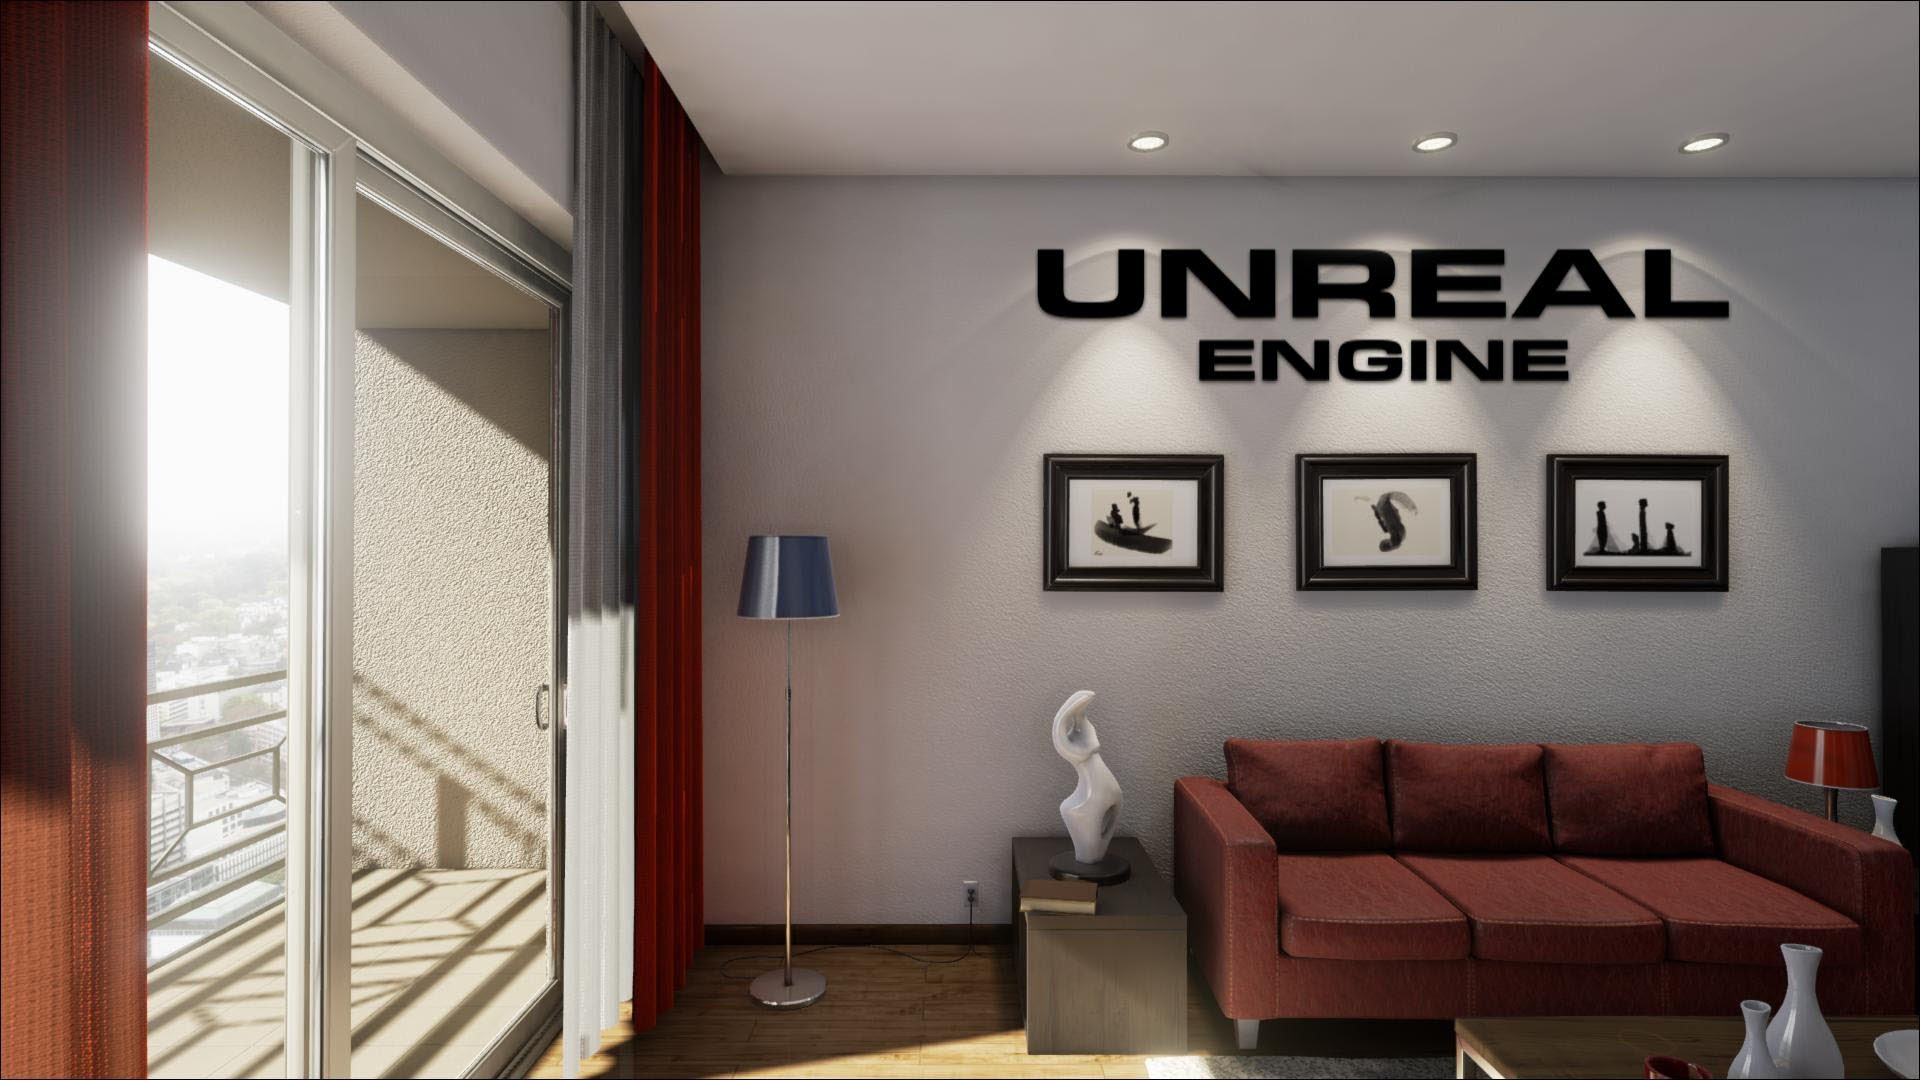 Download the Impressive Unreal Engine 4 [4 9] London Apartment